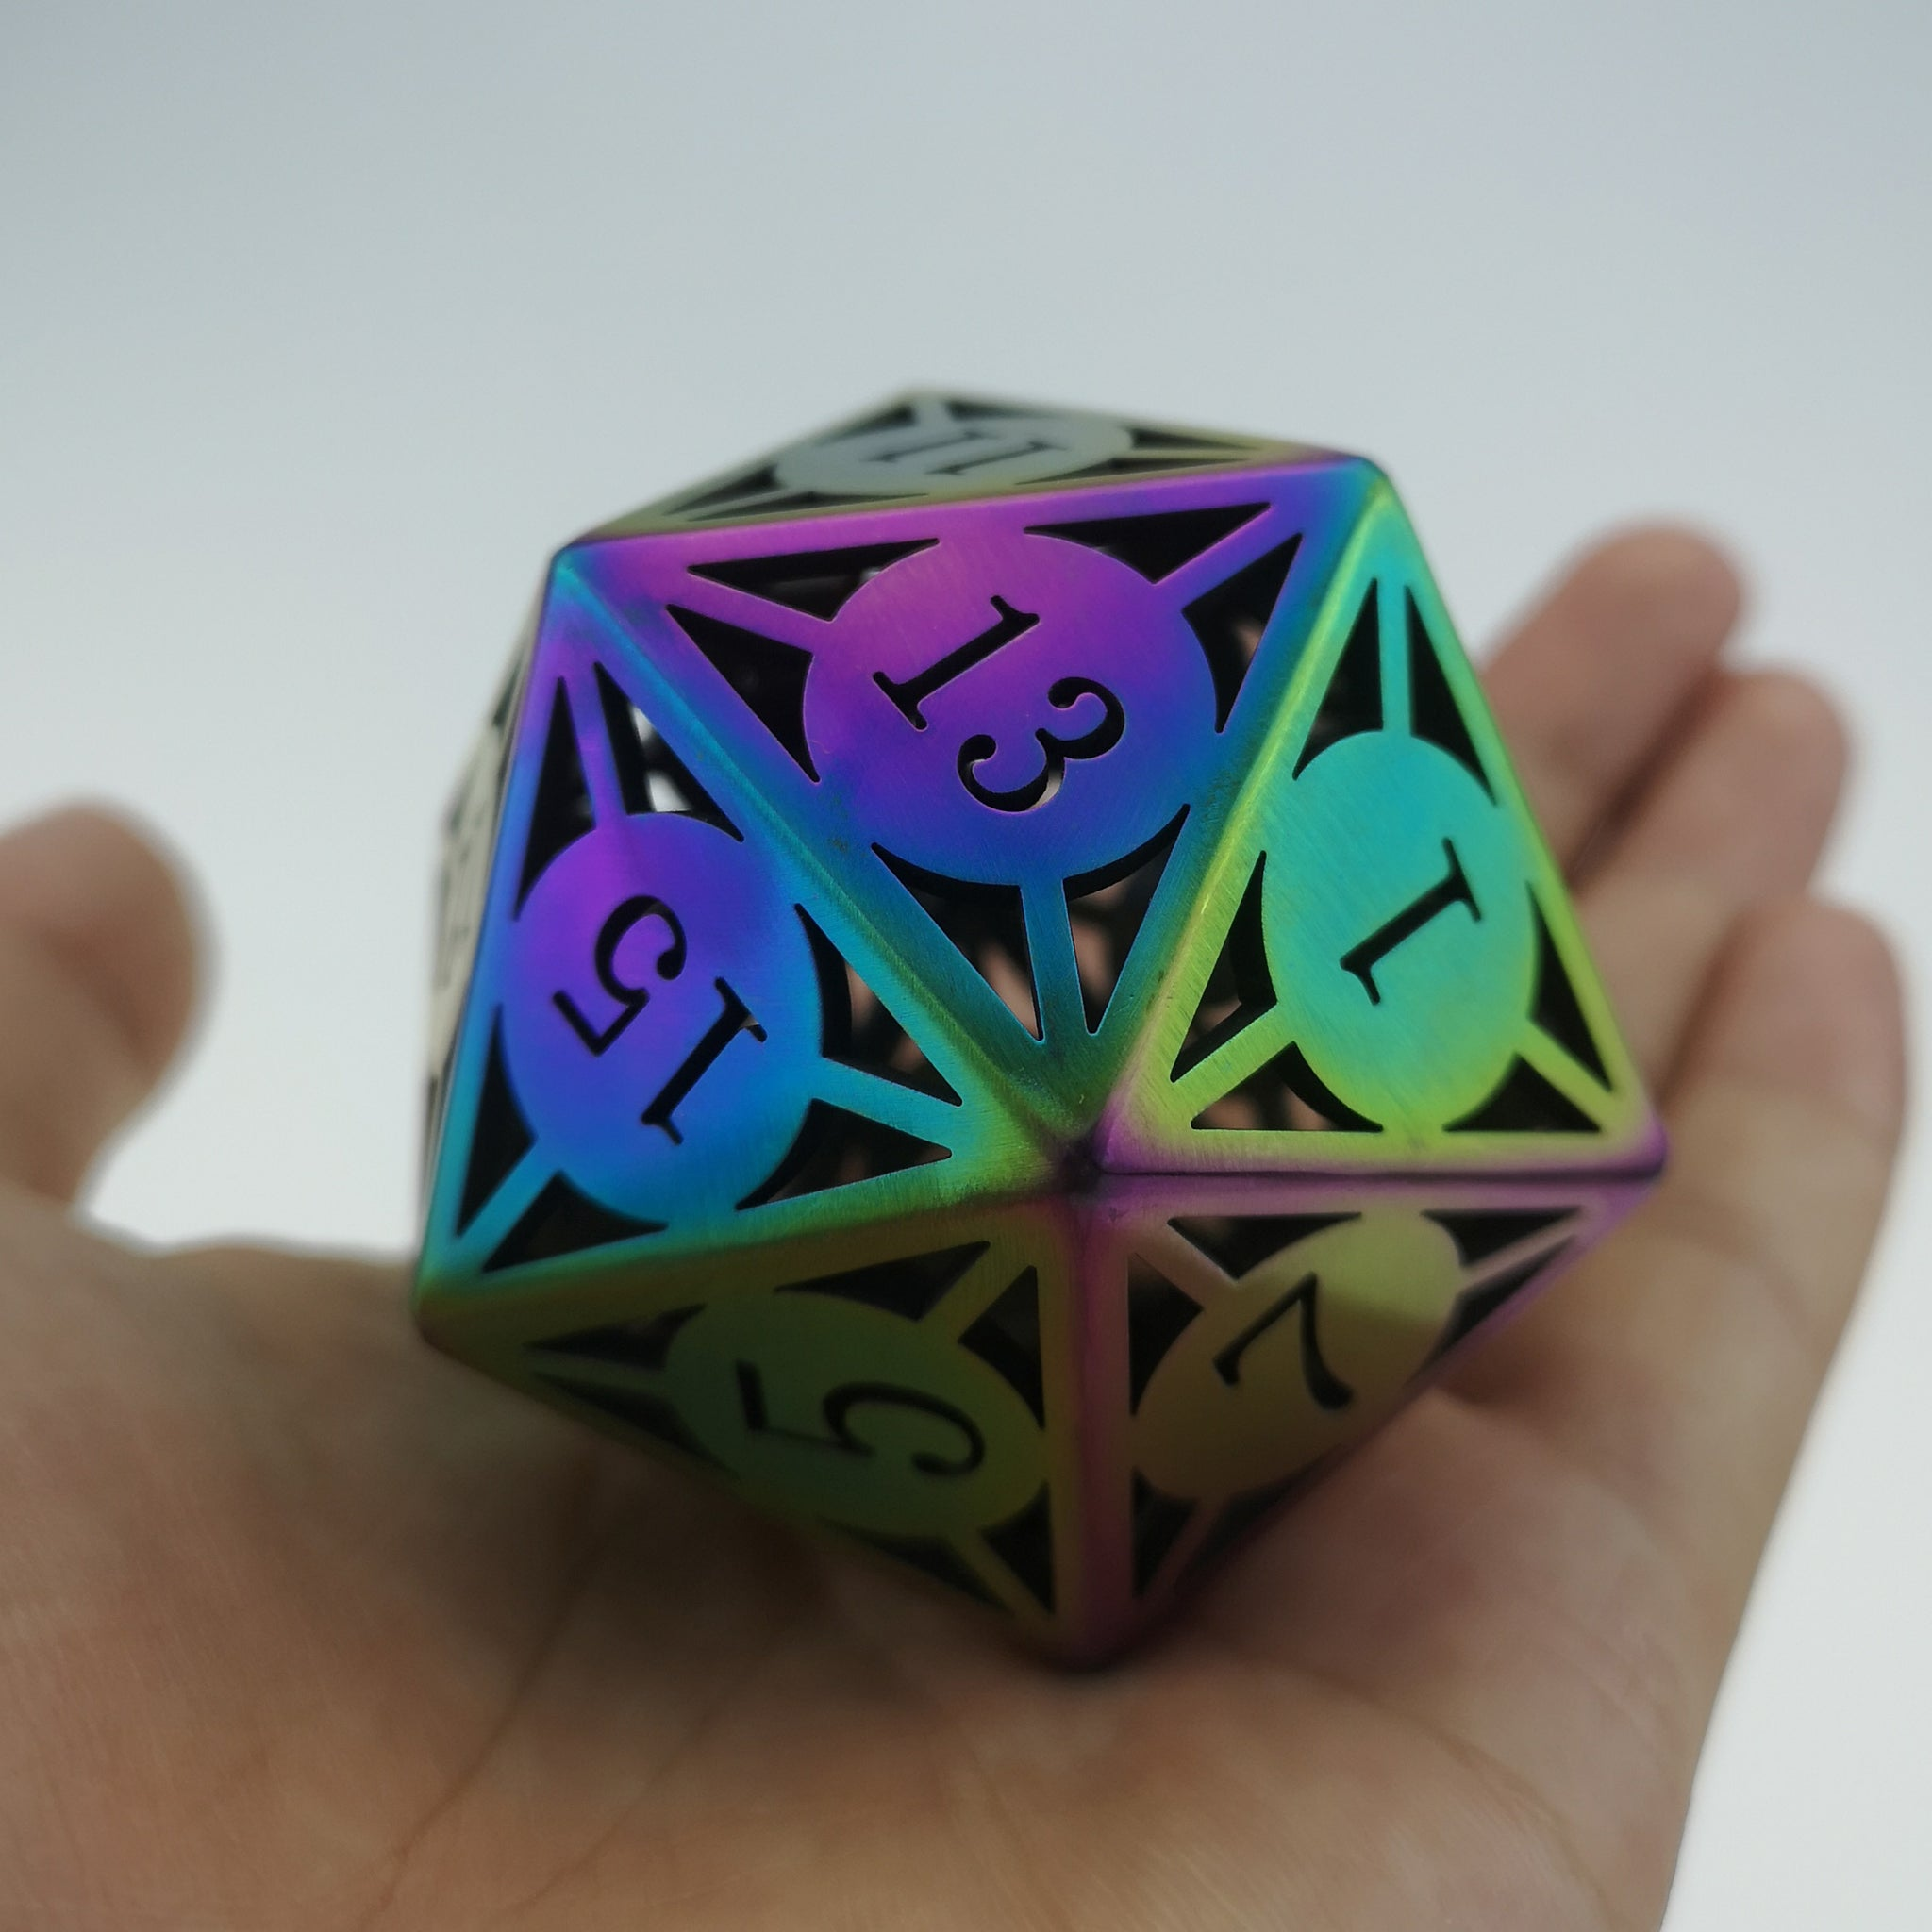 Giant Hollow Metal Dice D20